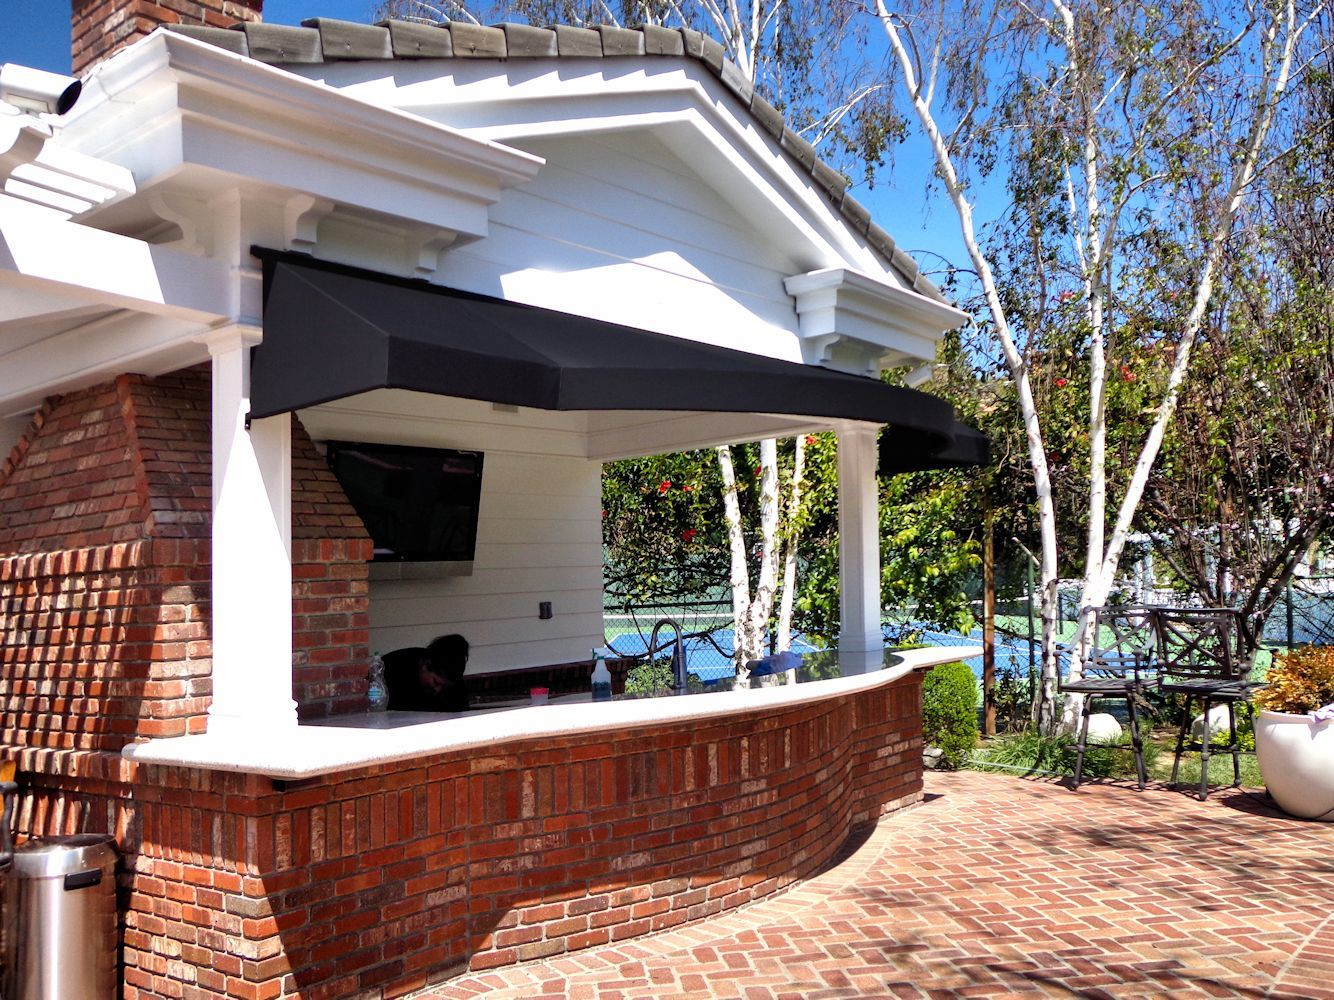 blogbeen pertaining bbq gazebos stylish of grill features to awning gazebo canopy